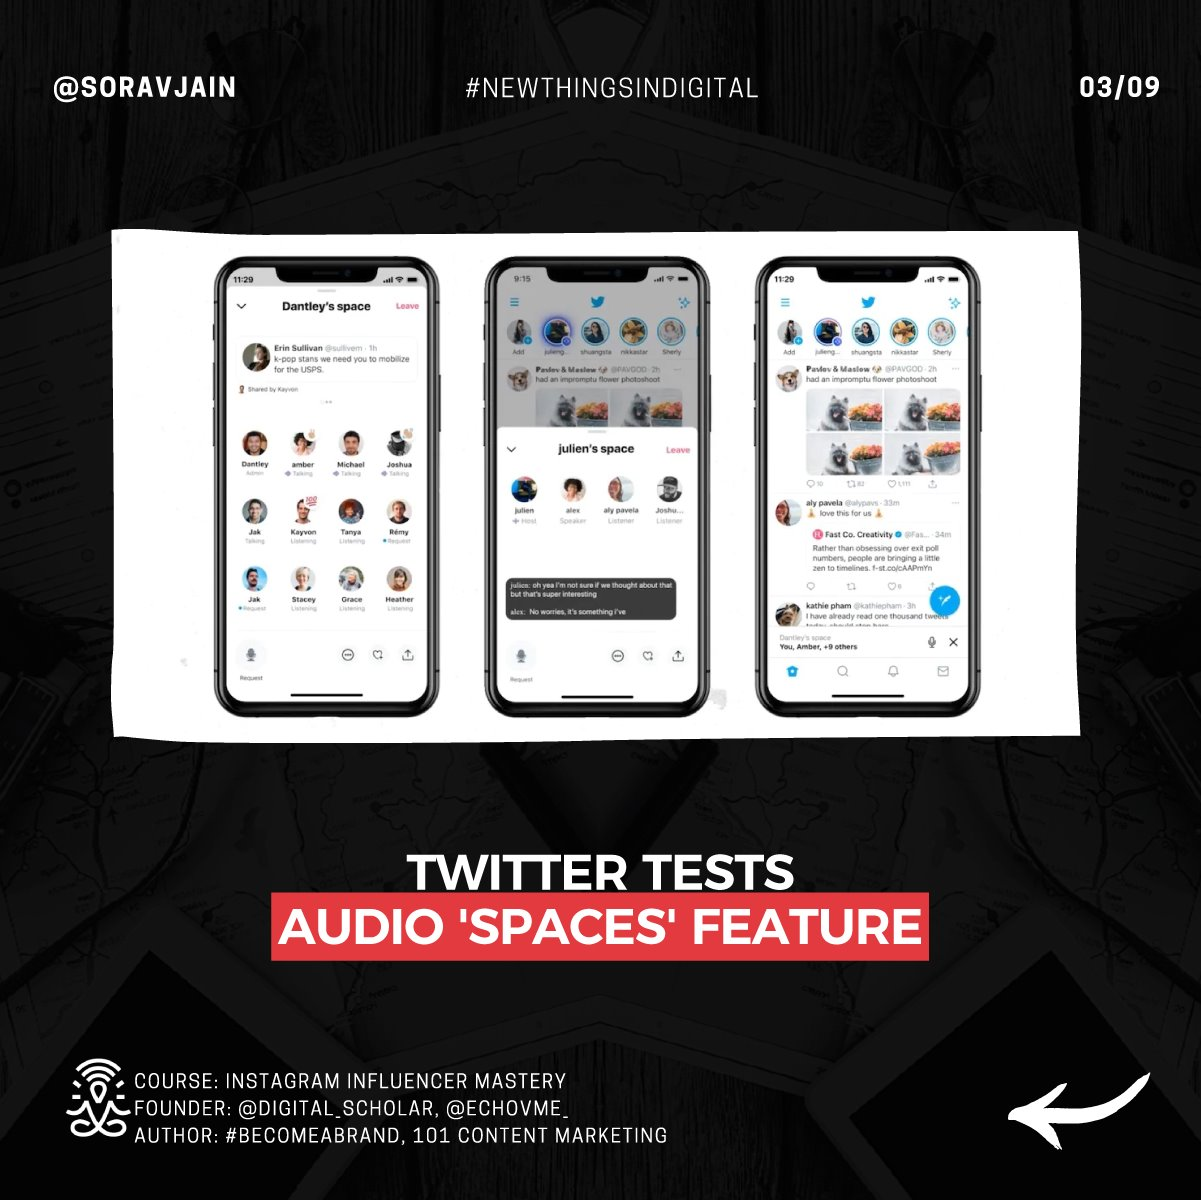 Twitter tests Audio' Spaces' feature